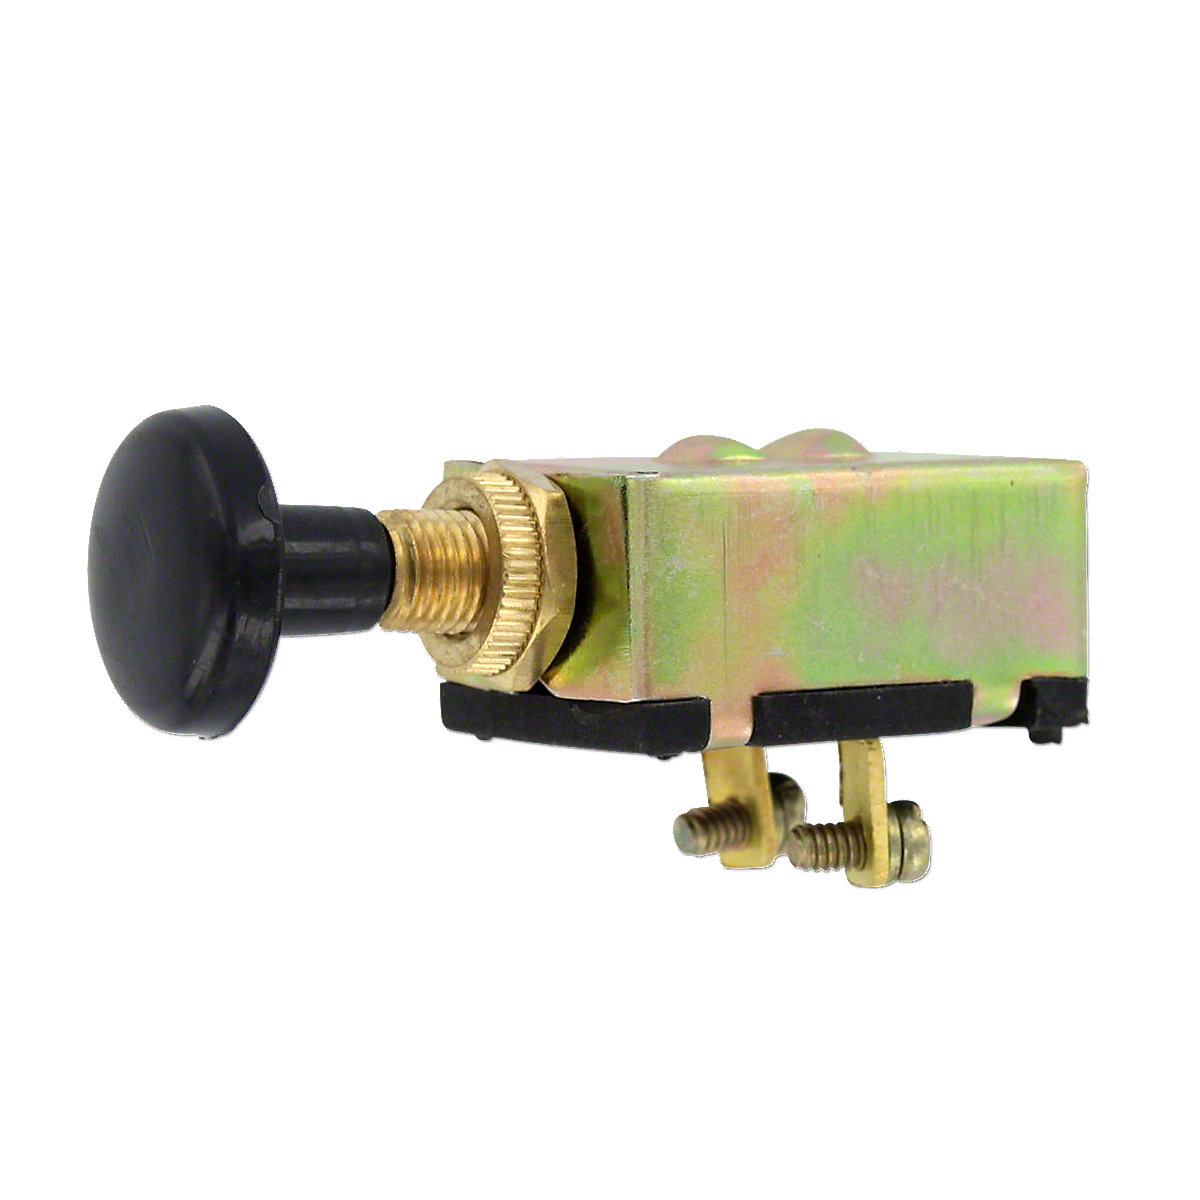 Universal 2 Position Push Pull Ignition Switch For Massey Harris And Massey Ferguson Tractors.